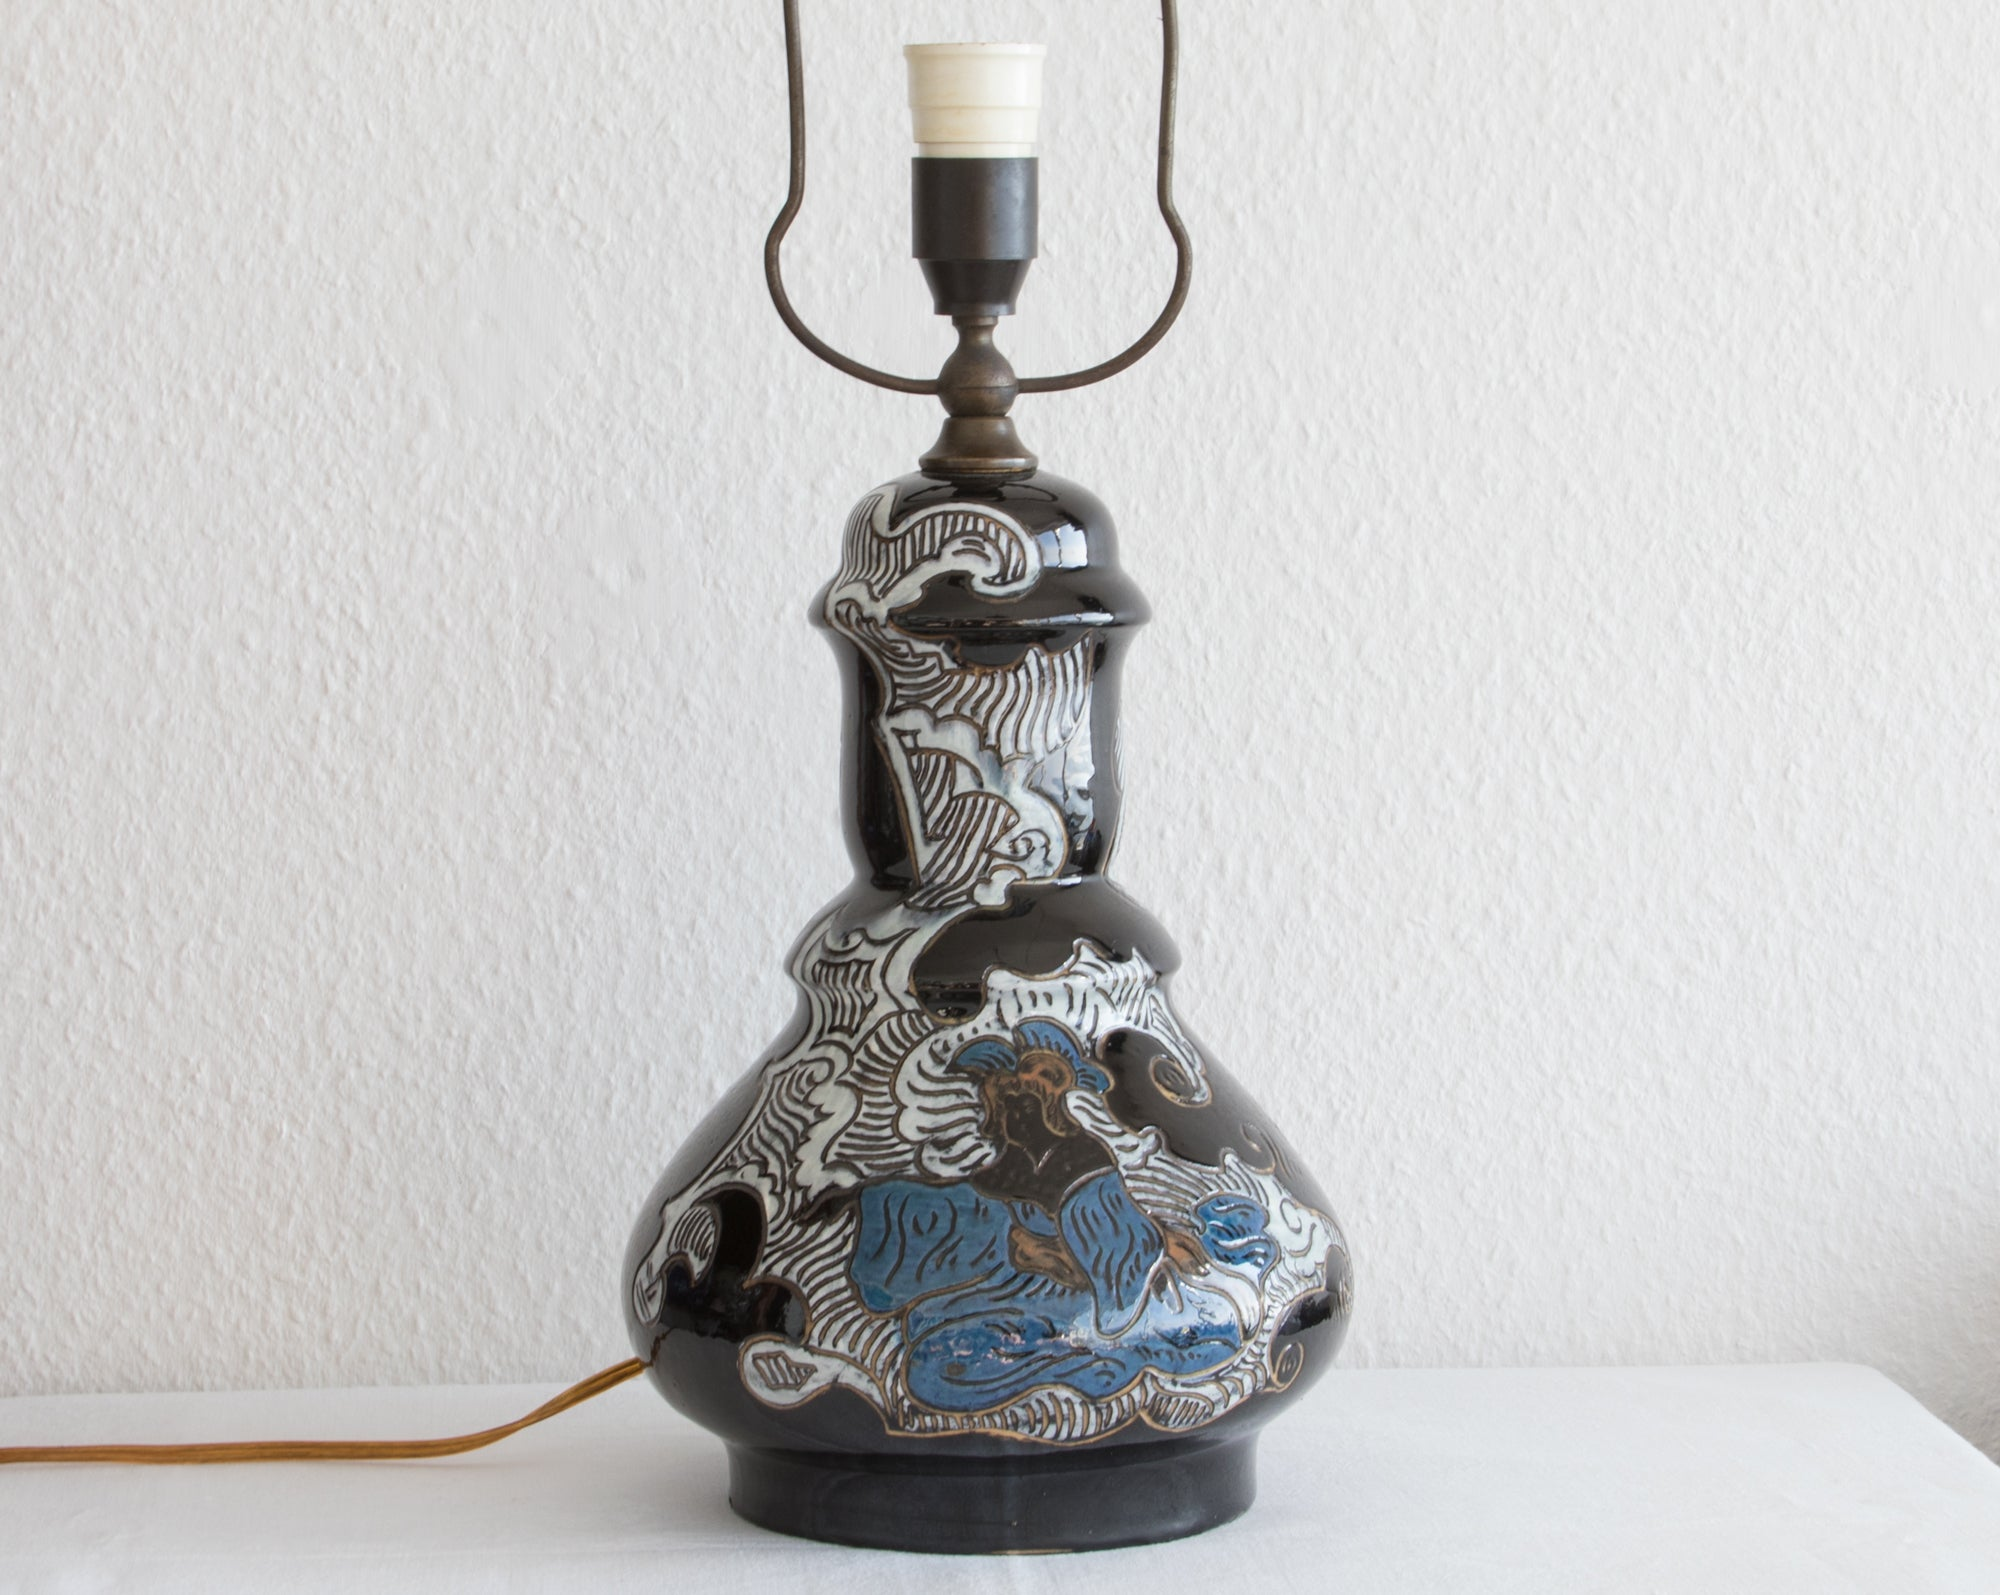 MØLLER & BØGELY Japonism Decorated Ceramic Table Lamp - Mollaris.com